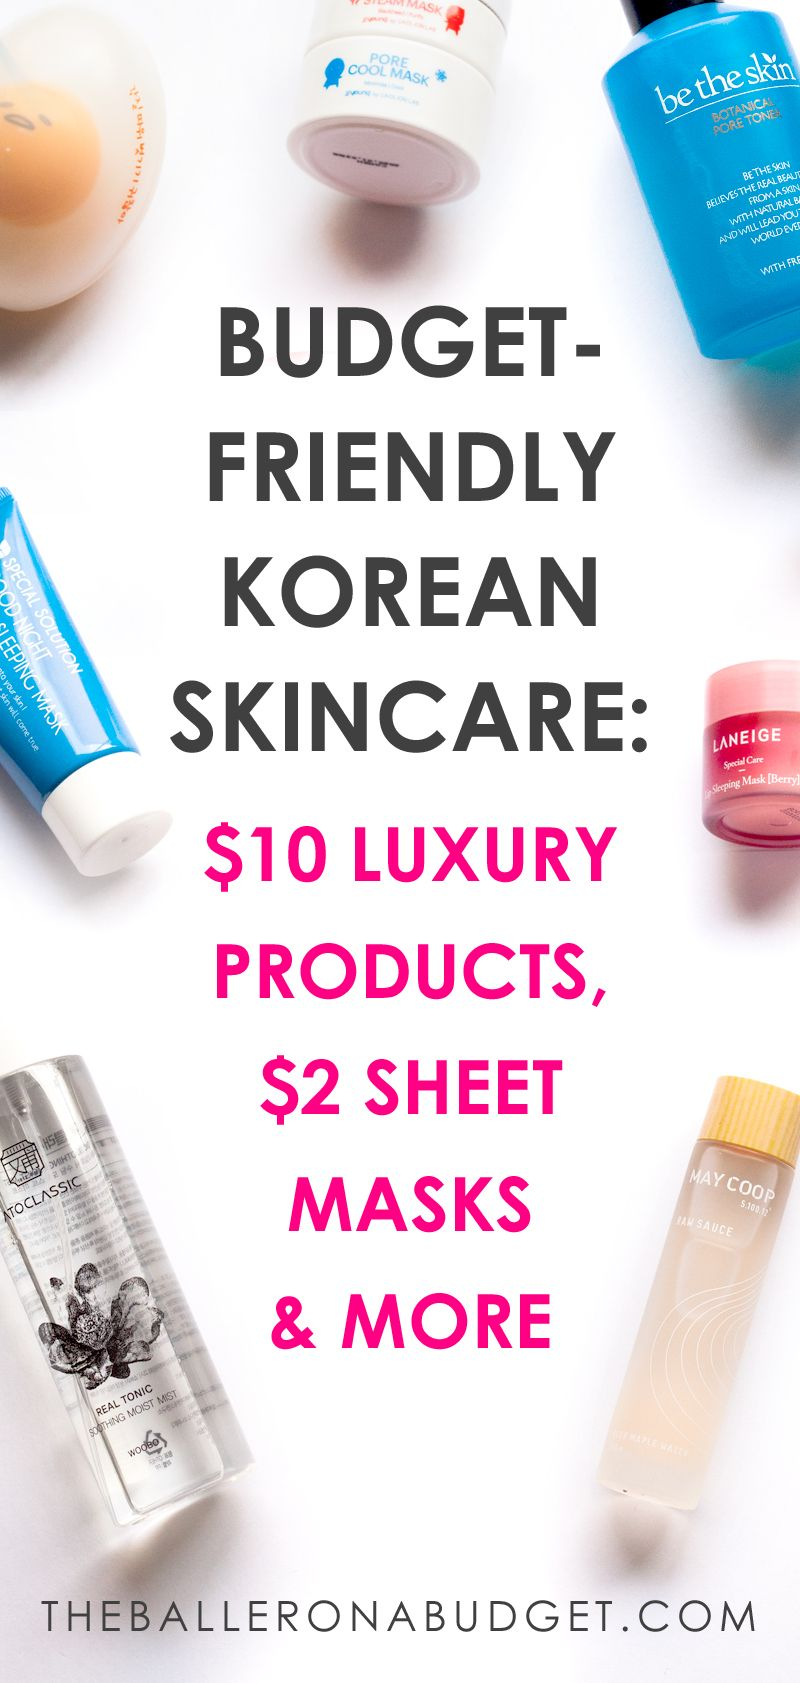 Budget Friendly Korean Skincare Favorites From Peach And Lily The Baller On A Budget An Affordable Fashion Beauty Lifestyle Blog Korean Skincare Peach And Lily Skin Care